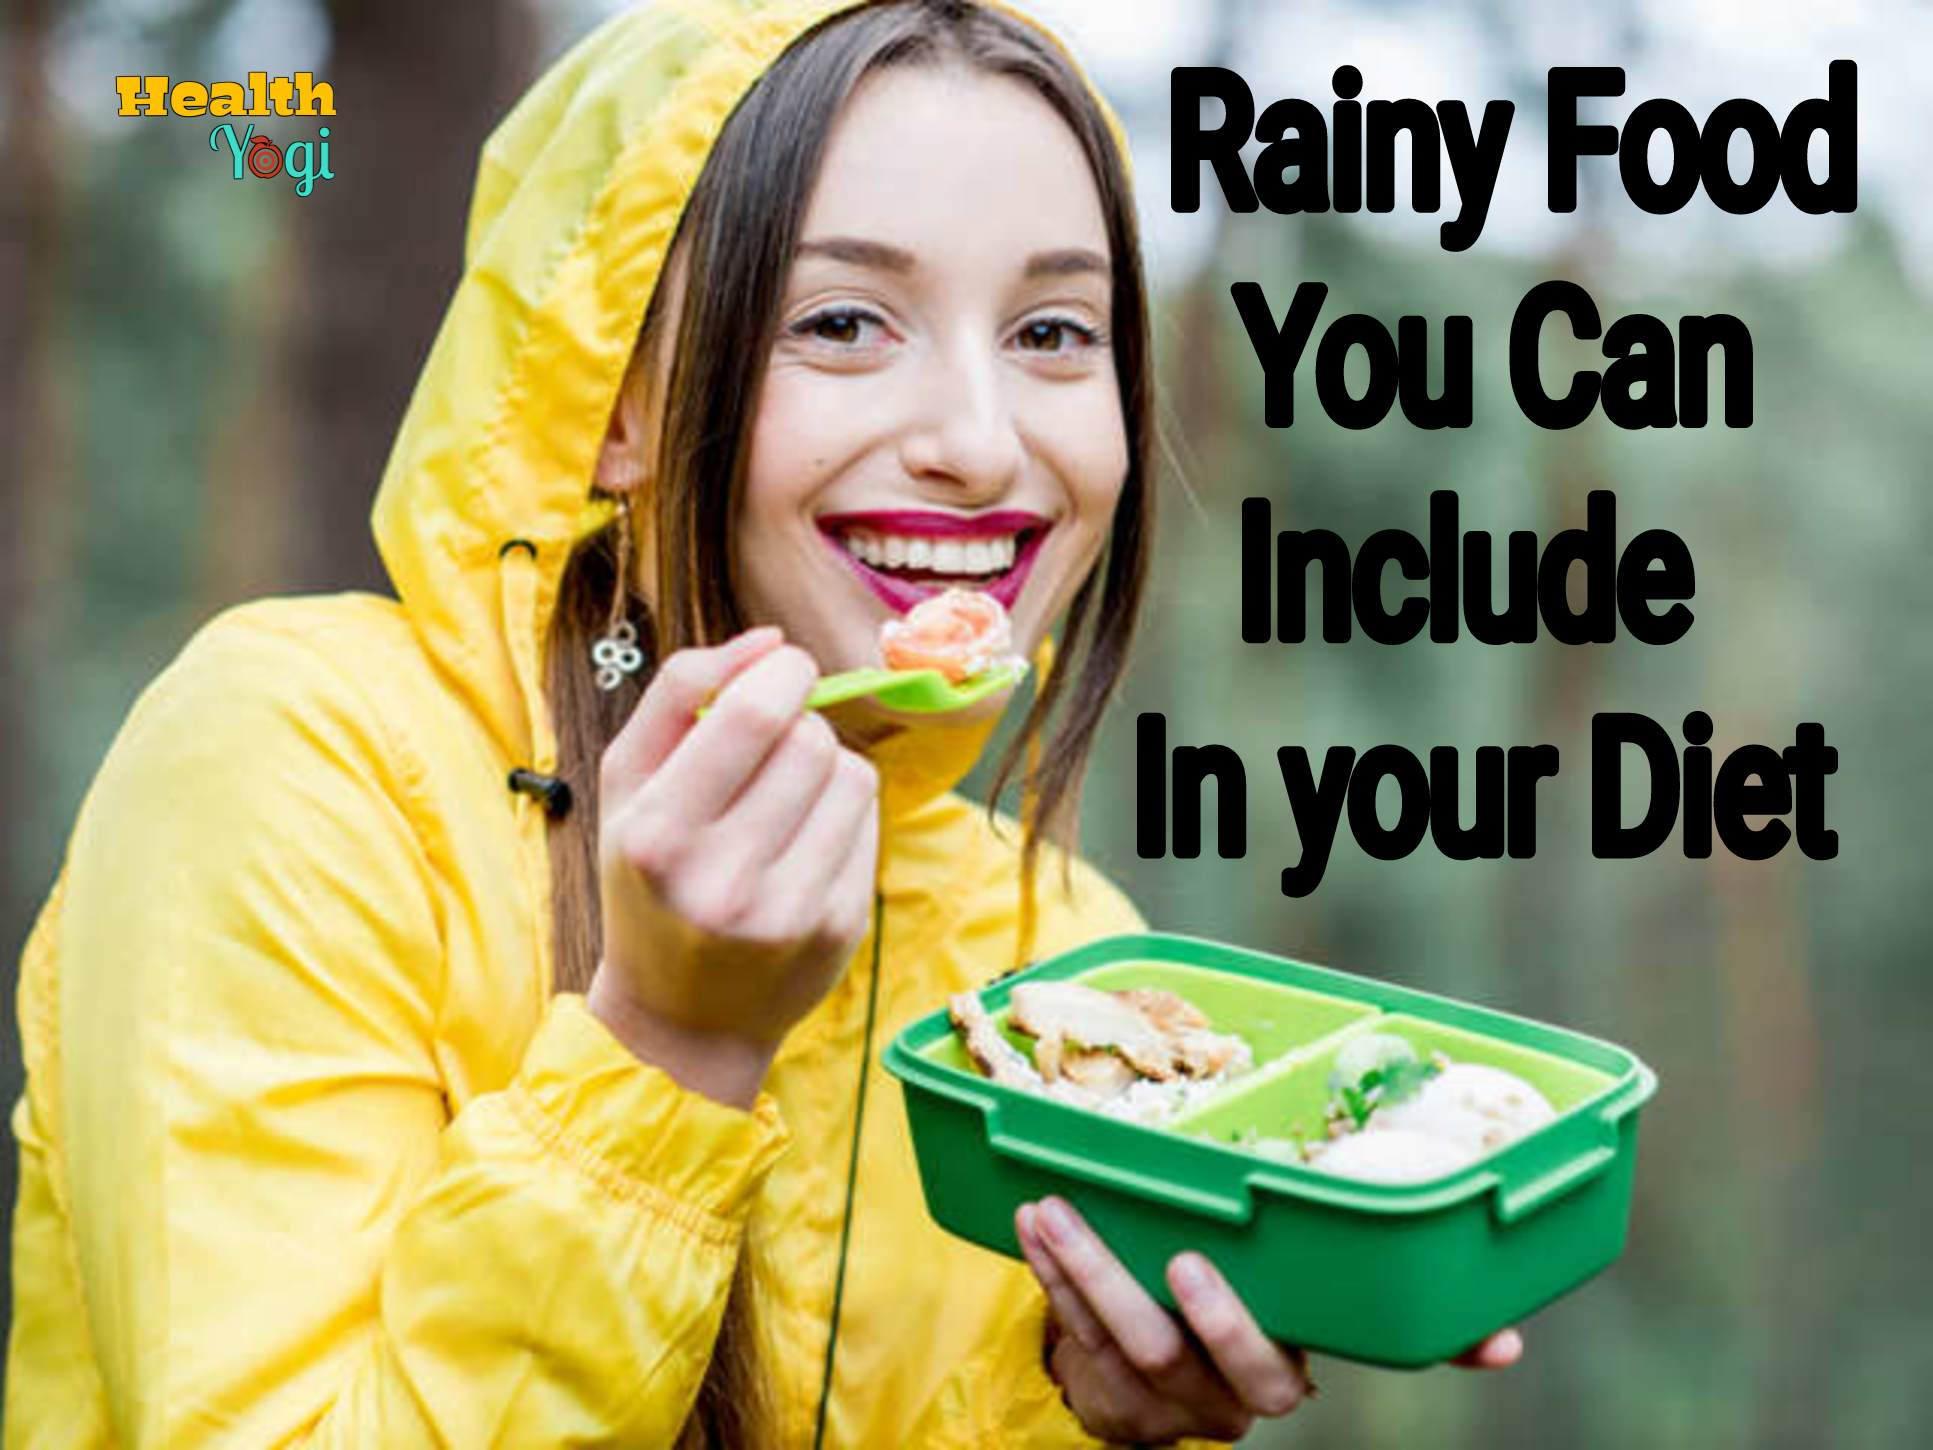 Top 10 Rainy Foods You Can Include In Your Diet